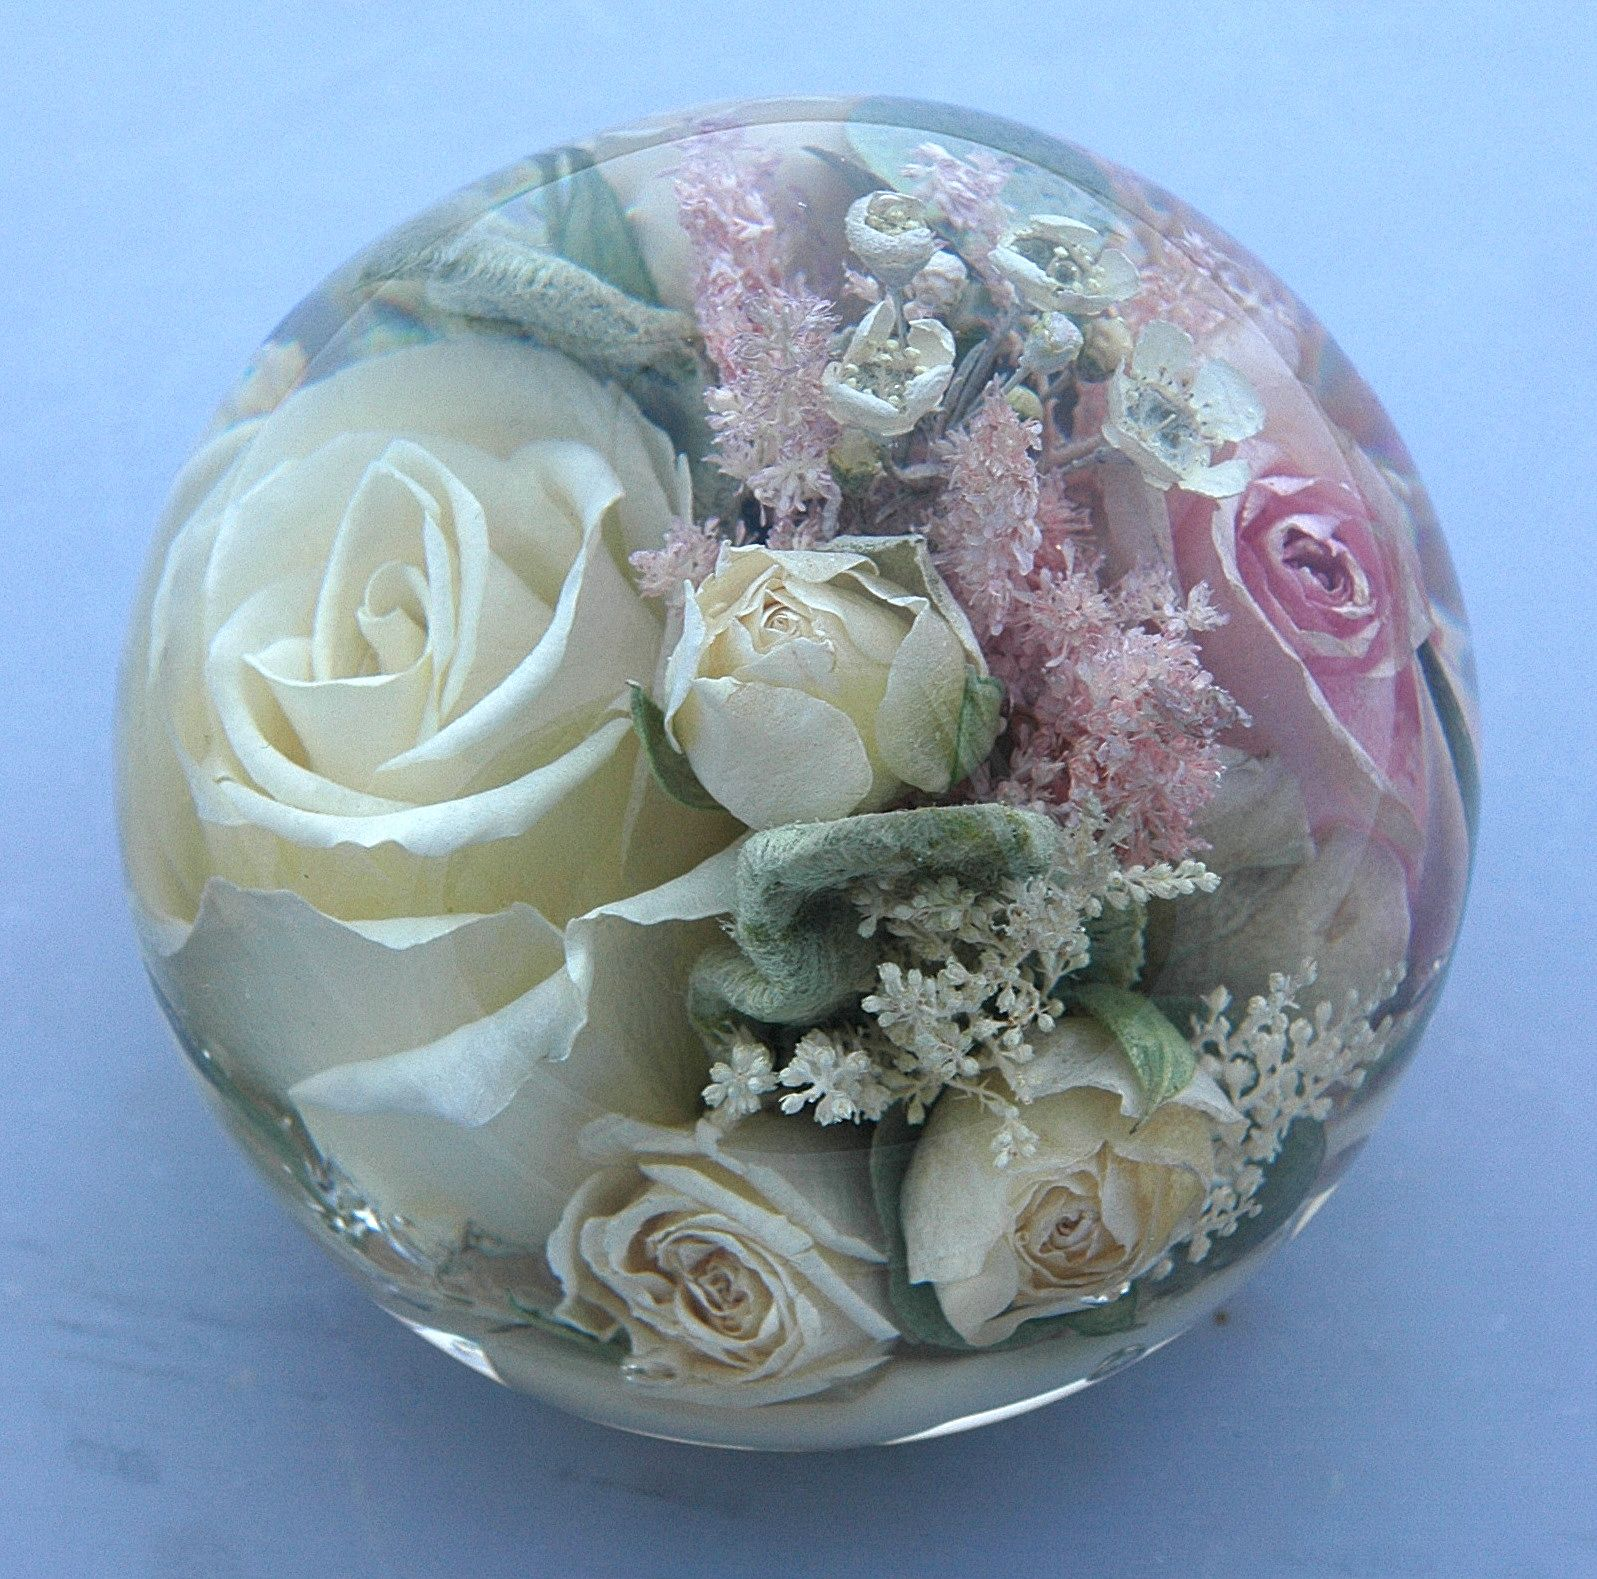 Sumptuous Flowers Preserved Forever In A Lovely Flower Paperweight